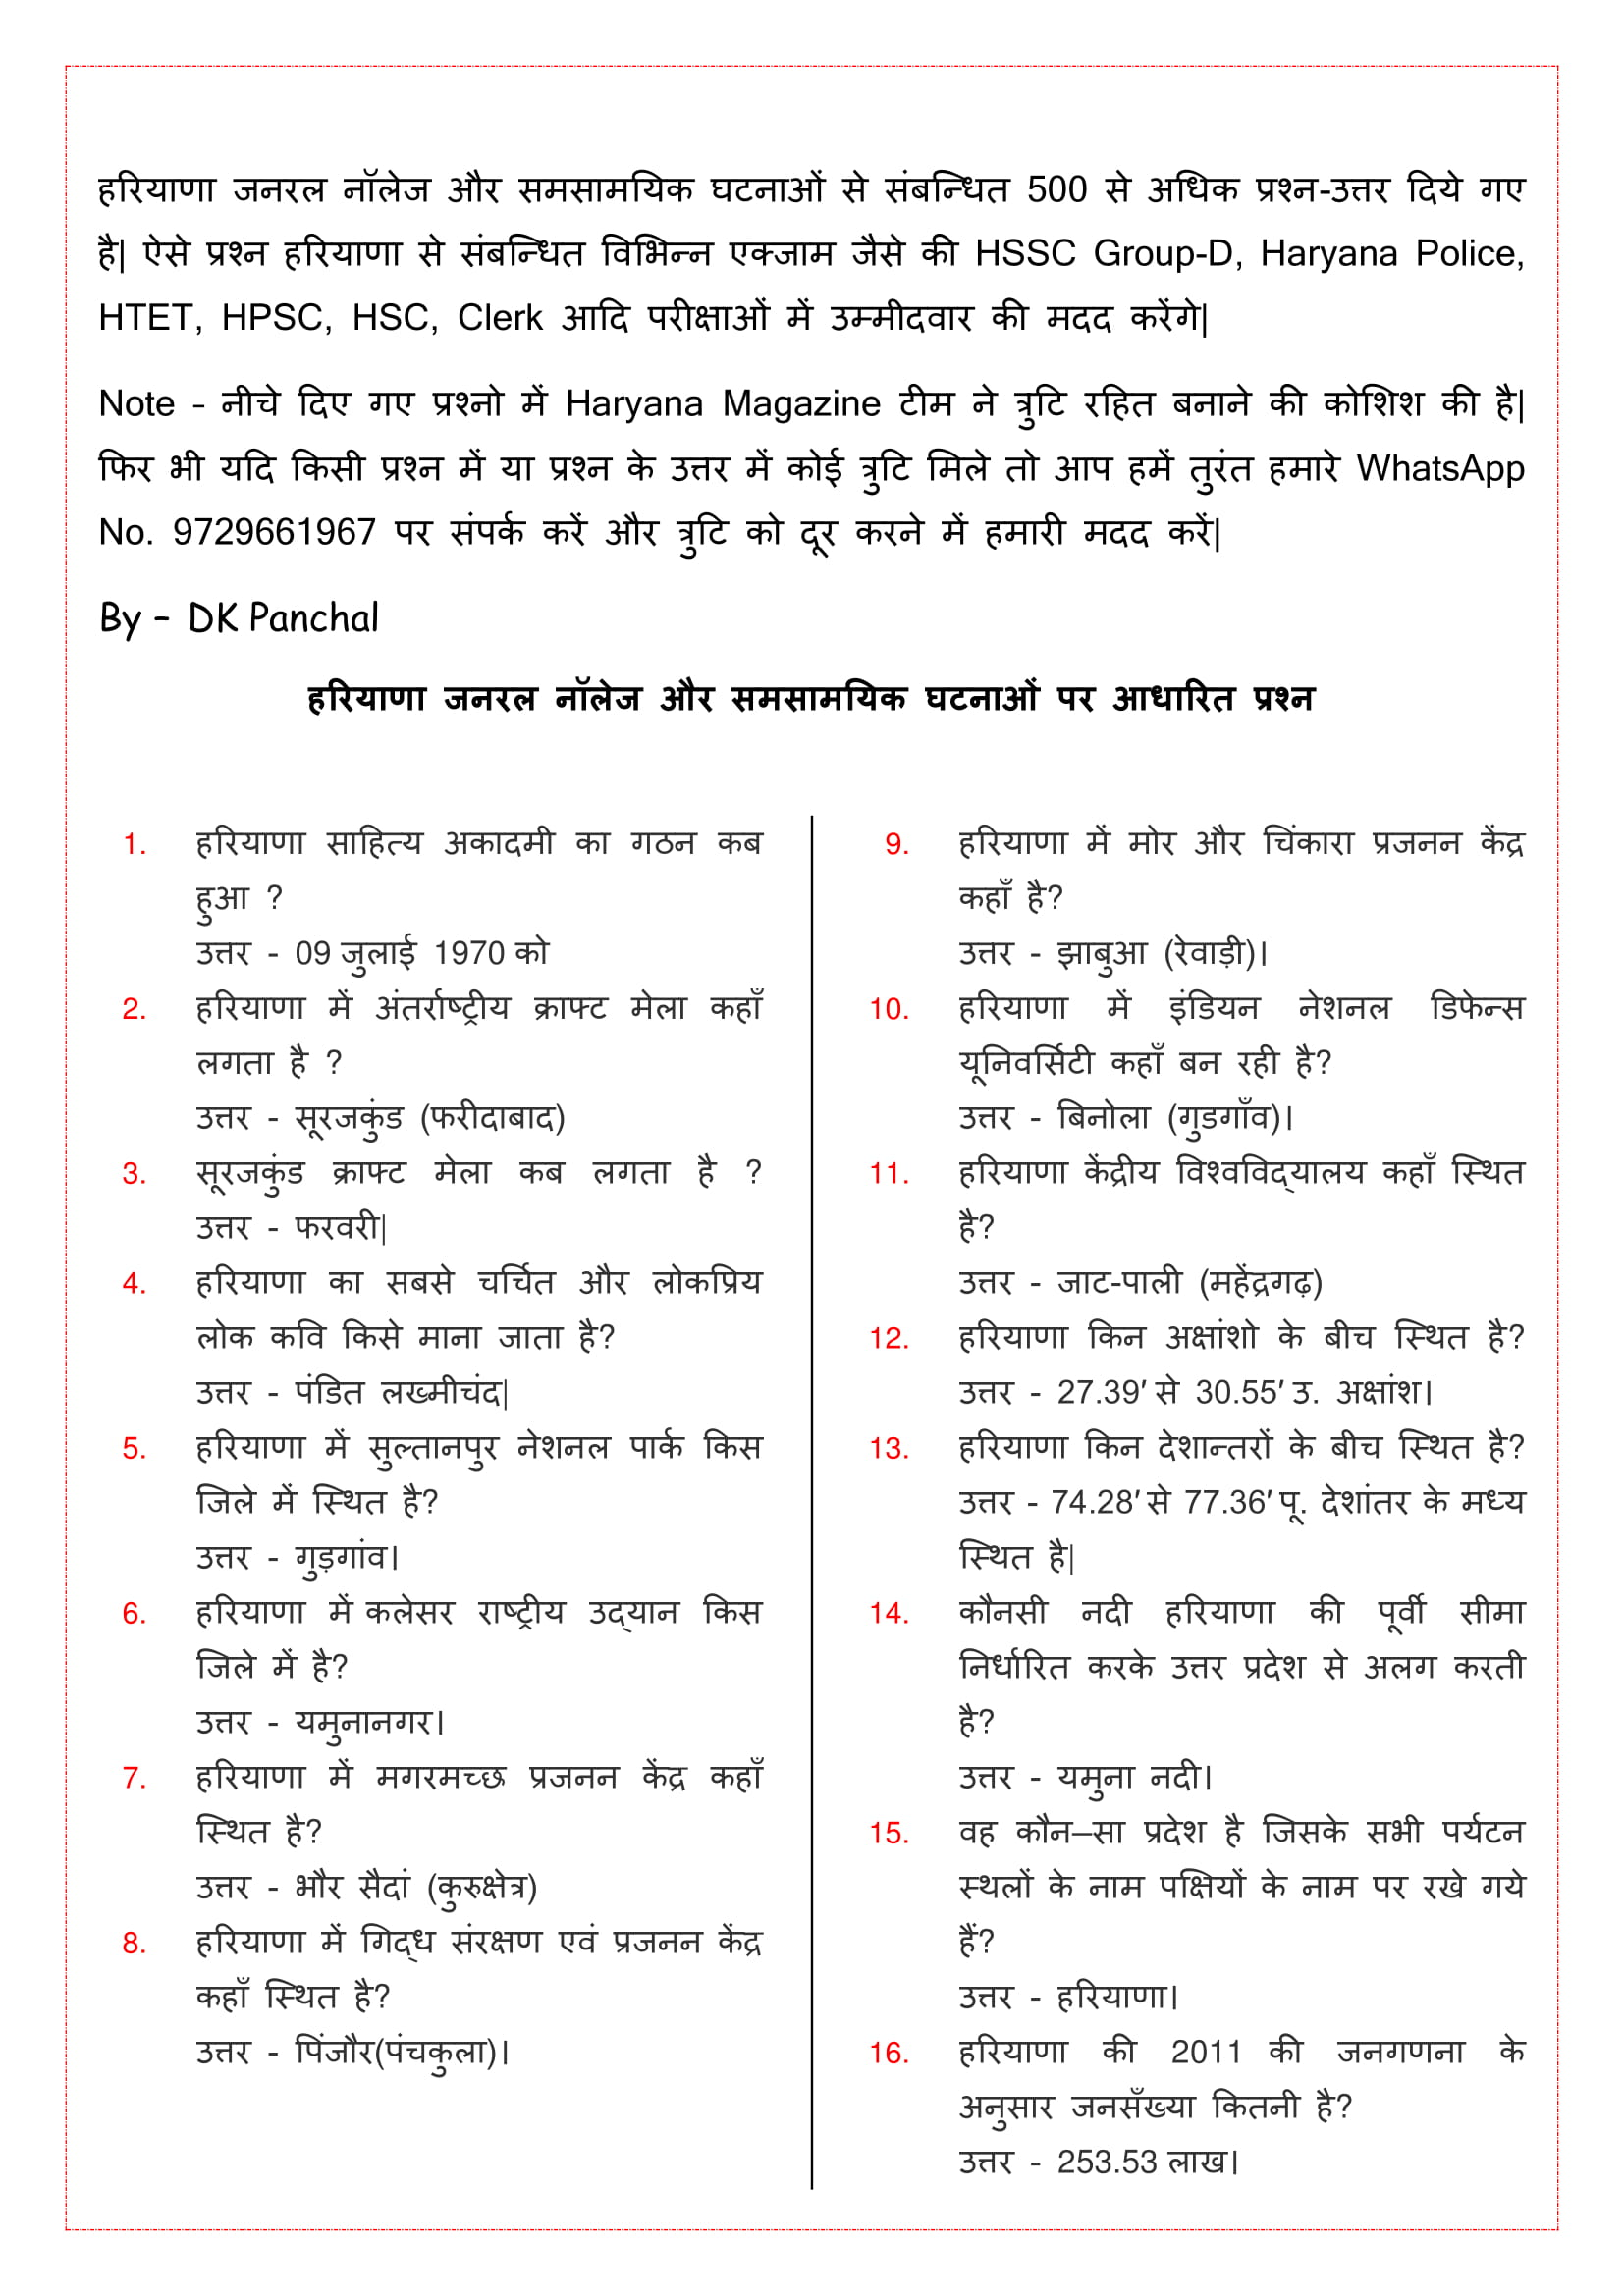 GENERAL KNOWLEDGE QUESTIONS AND ANSWERS IN HINDI PDF FILE